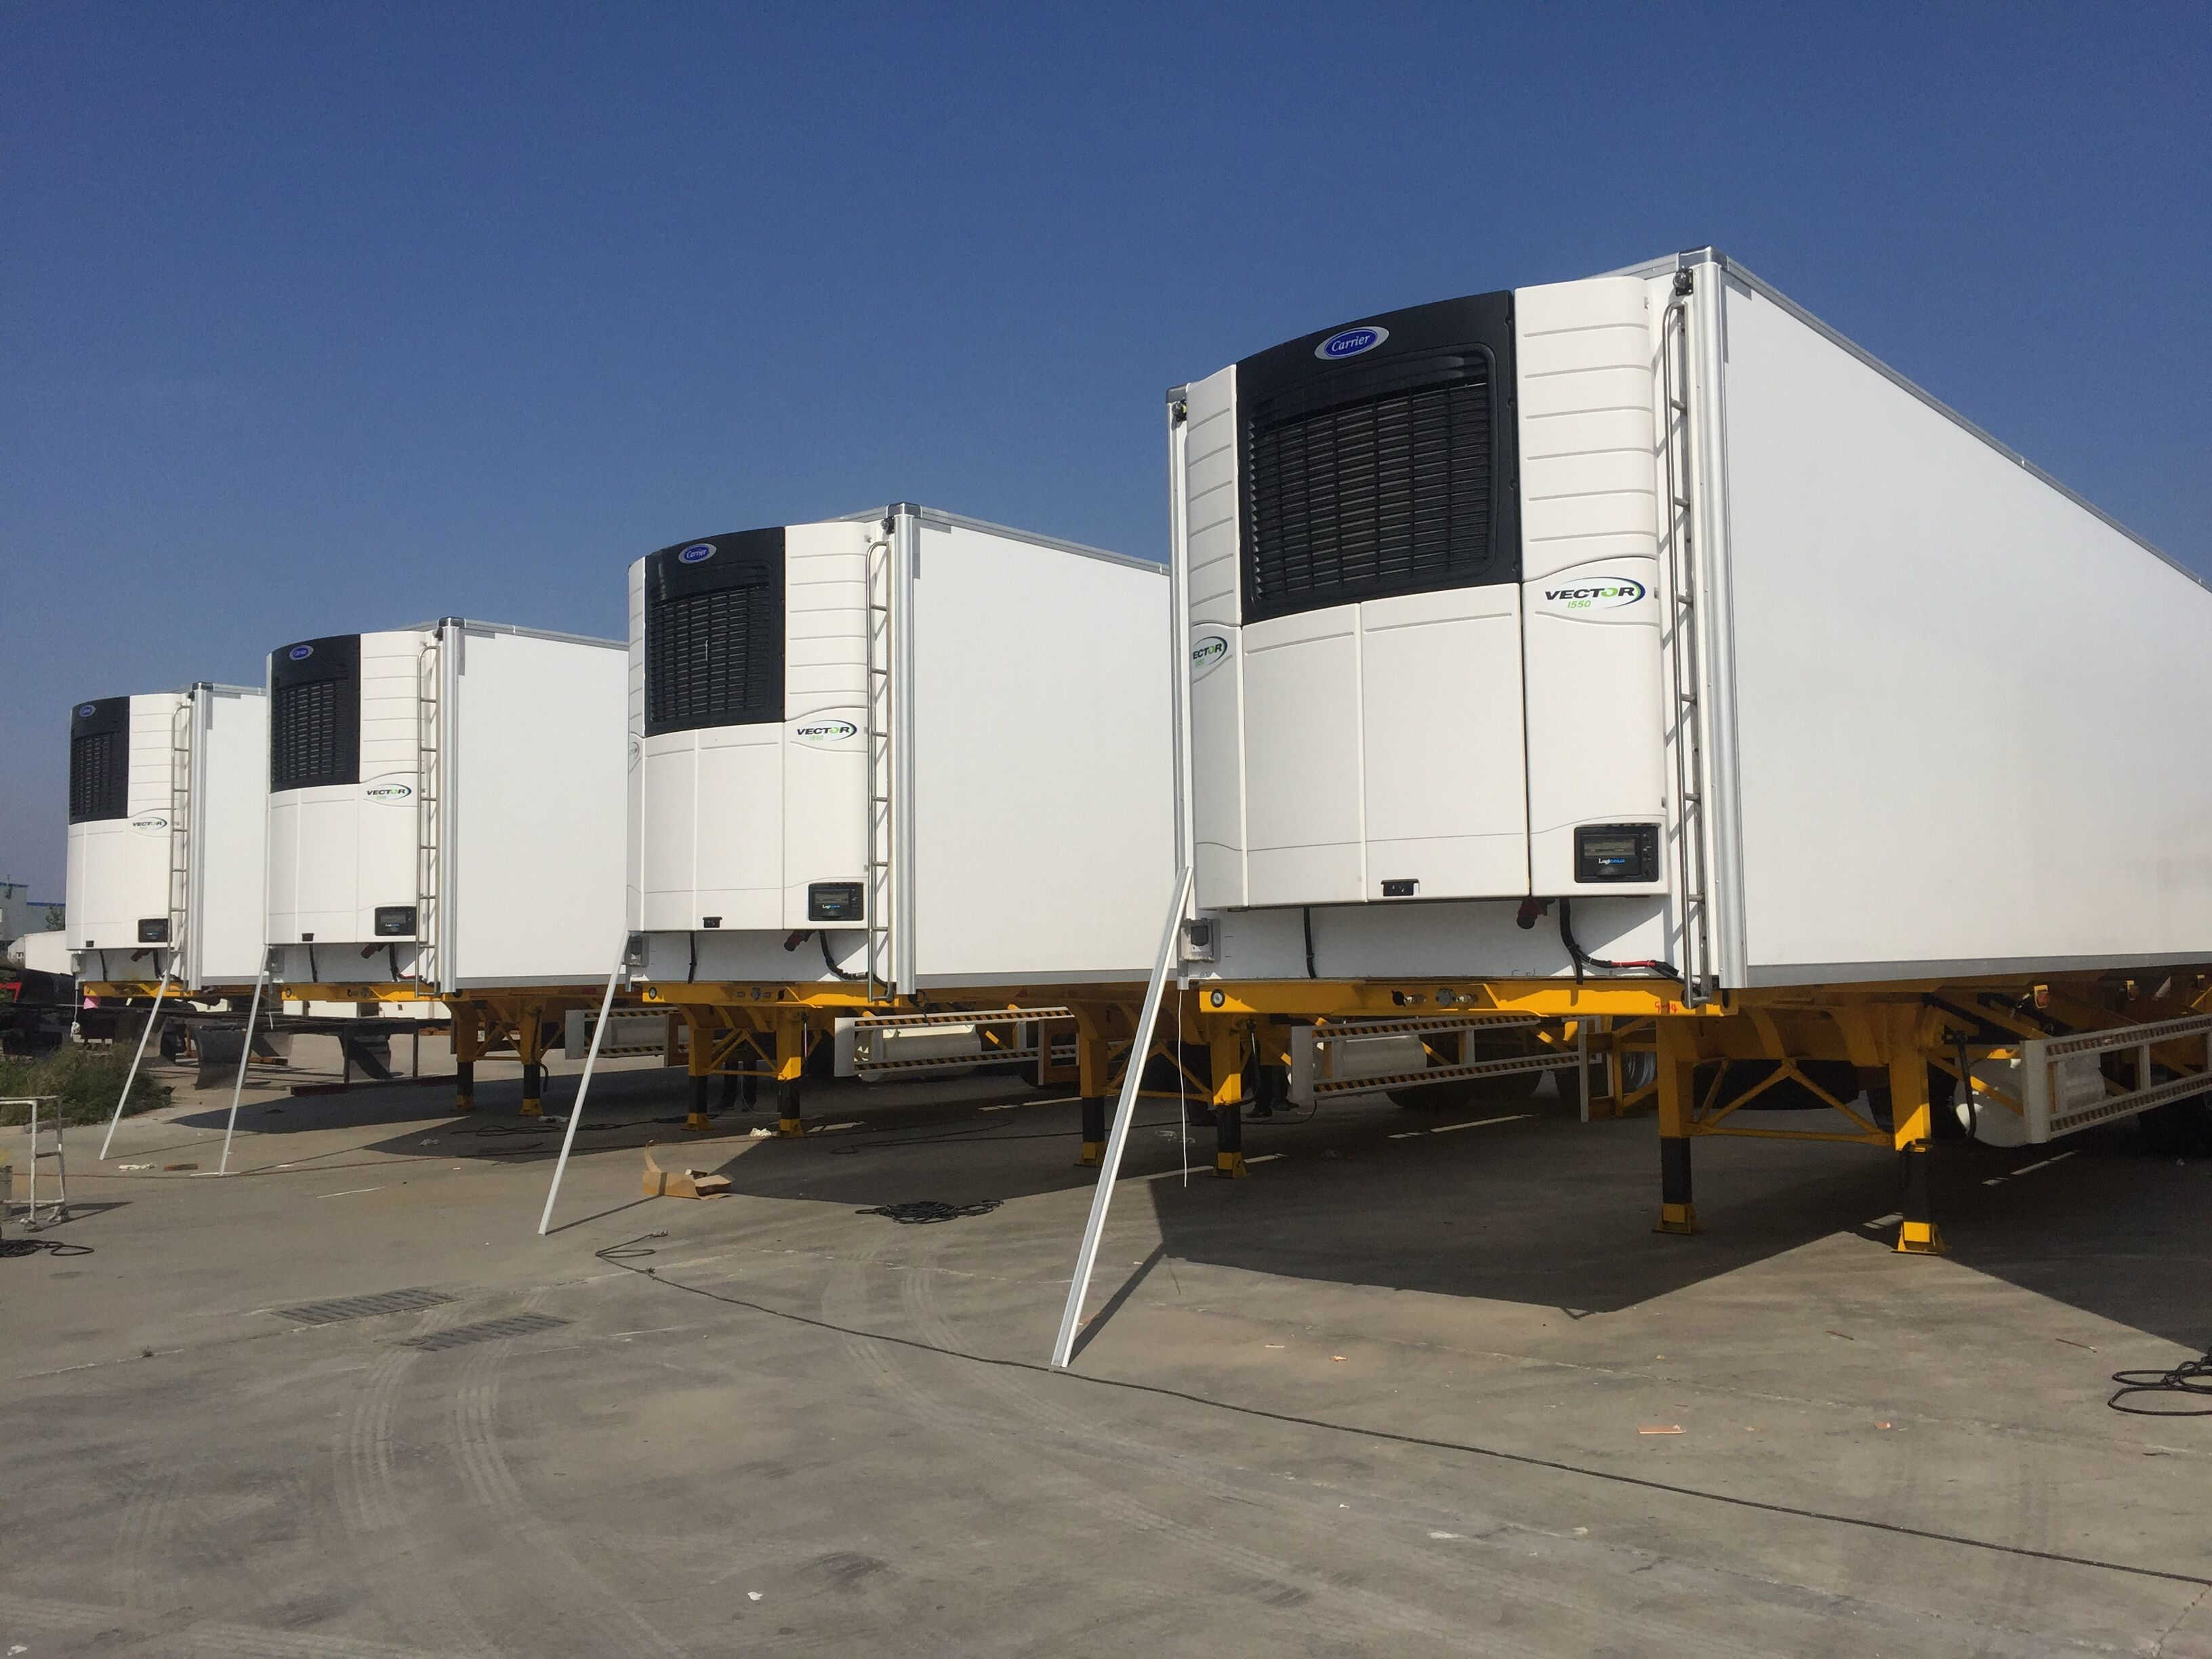 20 40 45ft Refrigerated Dry Vans Trailers For Sale From